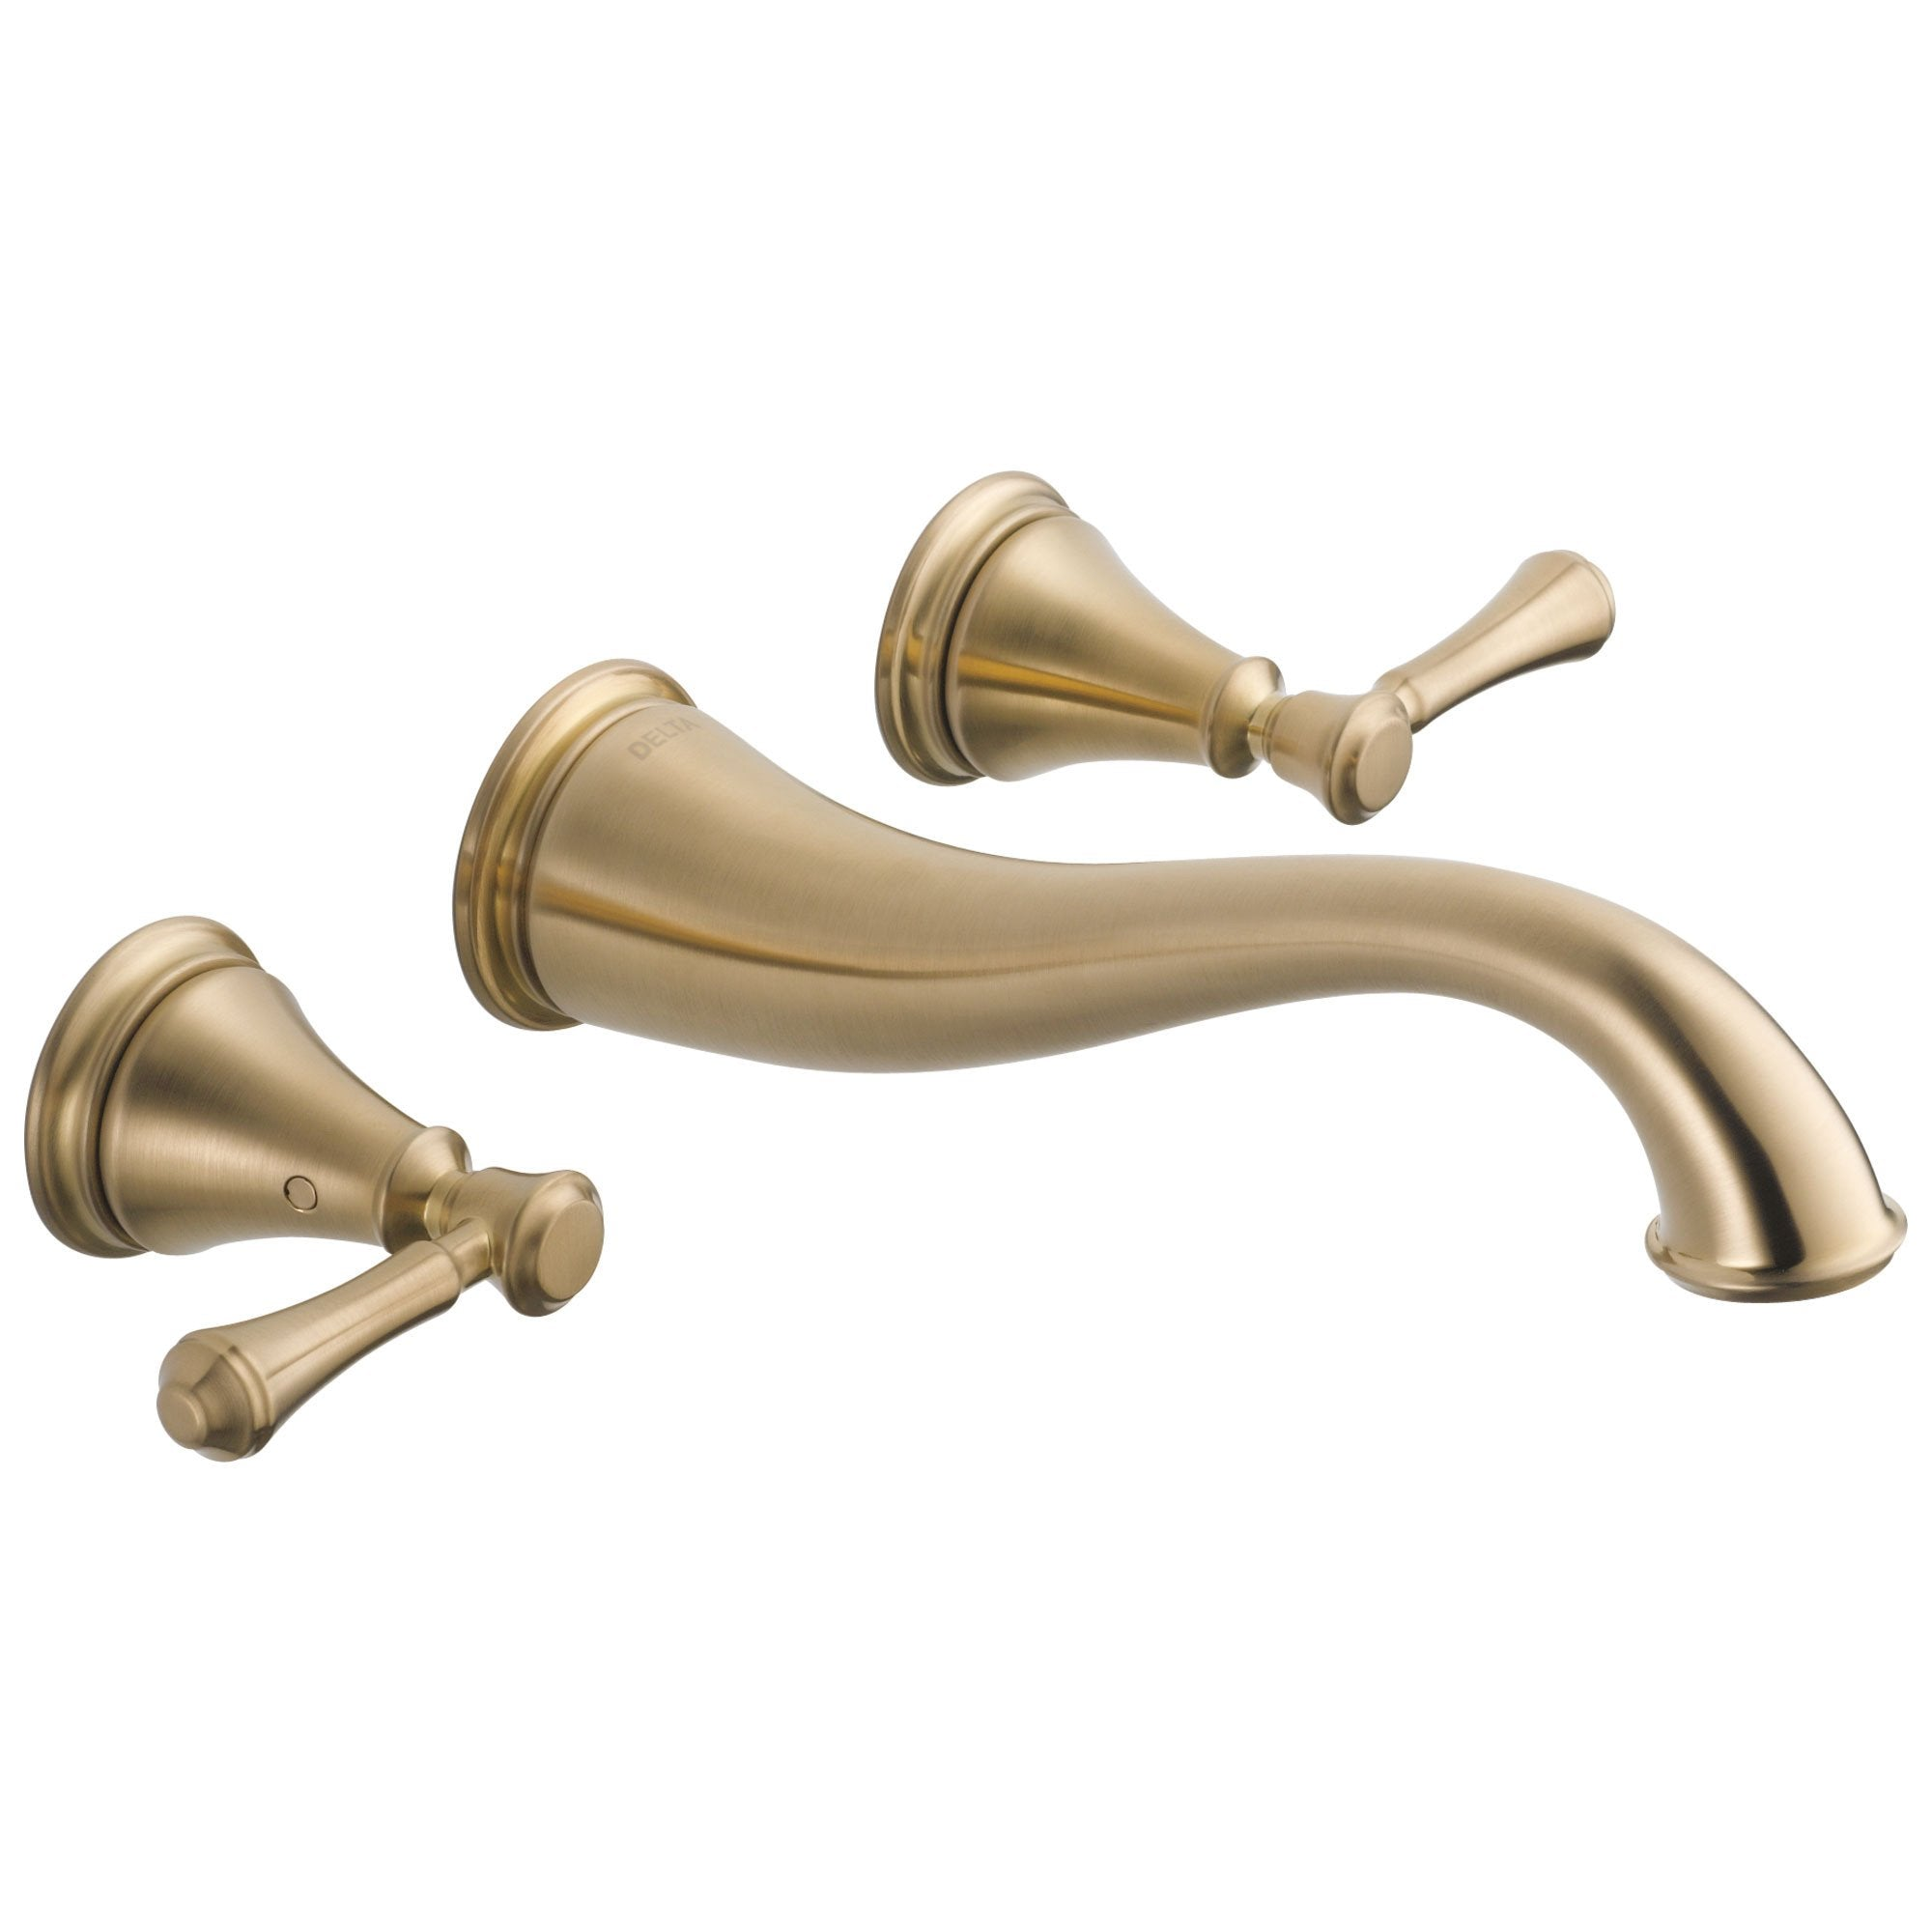 Delta Cassidy Collection Champagne Bronze Traditional Style Two Handle Wall Mount Bathroom Sink Faucet Trim Kit (Requires Rough-in Valve) DT3597LFCZWL